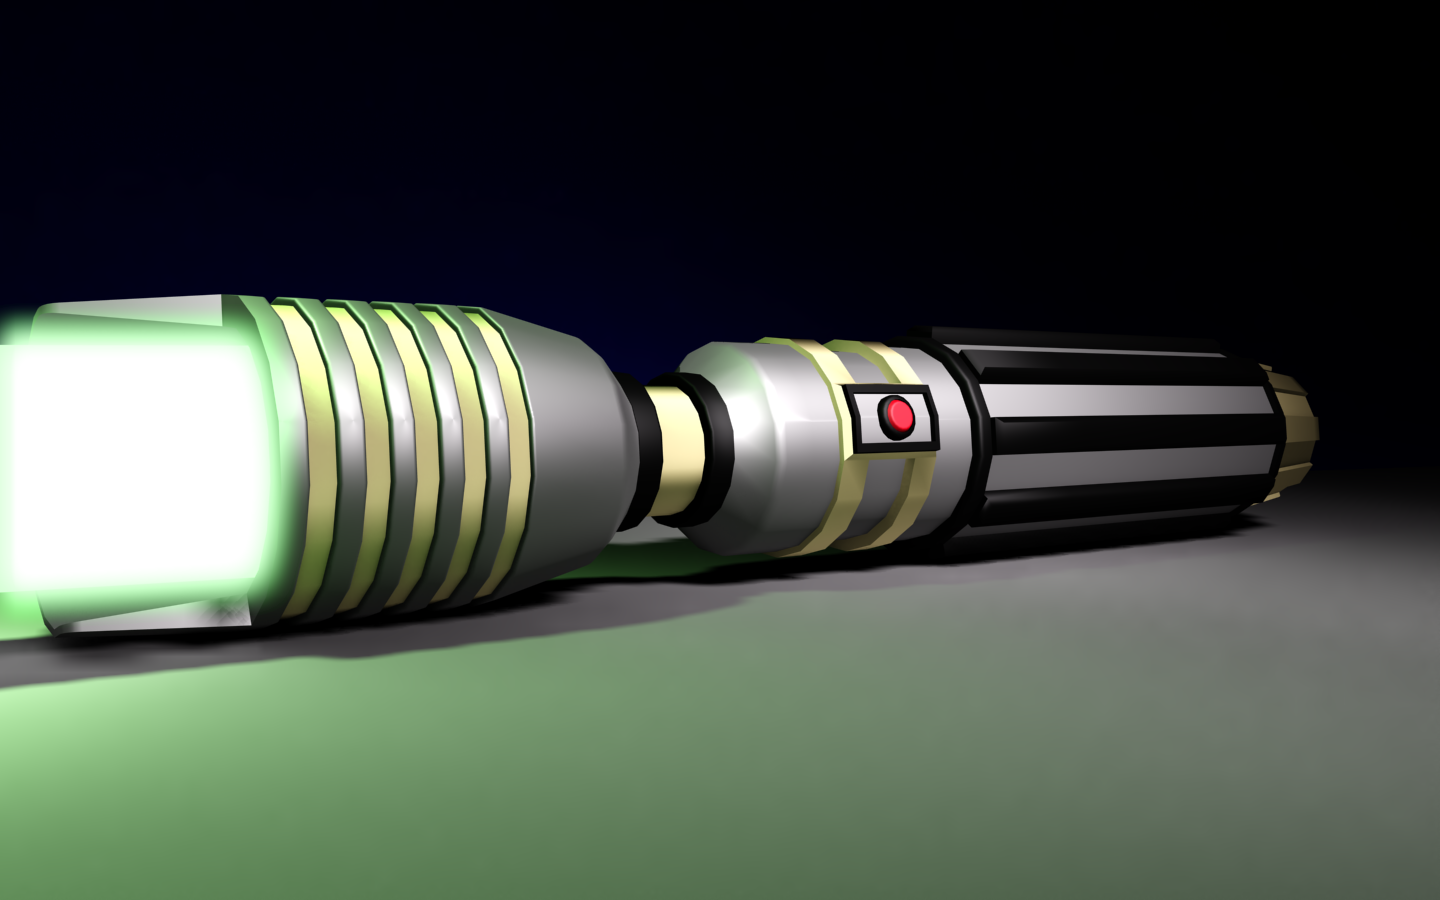 Custom 3D Jedi Lightsaber